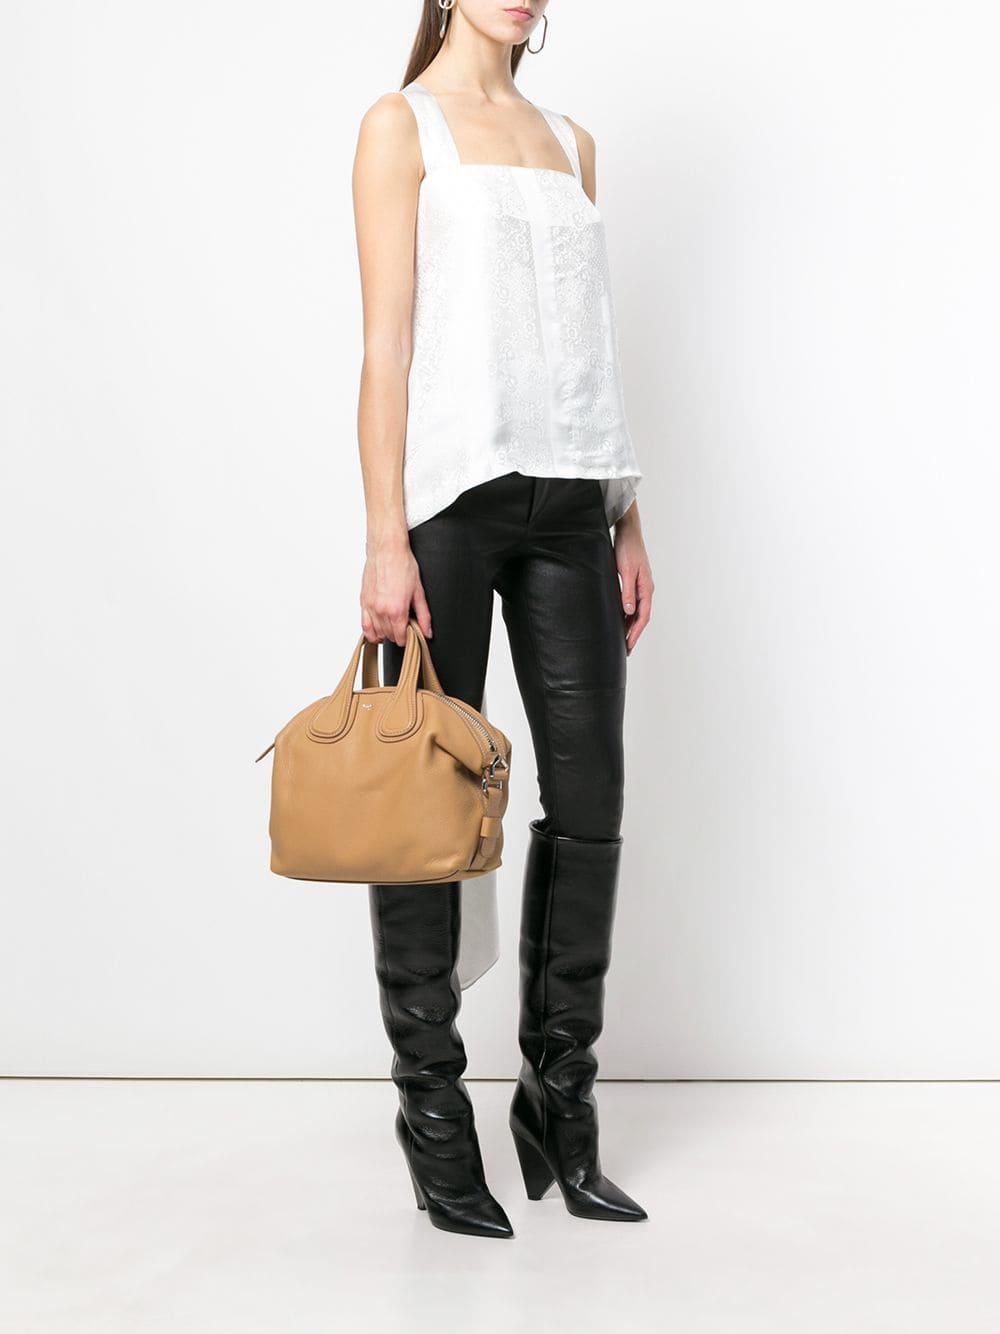 58836ae551 Lyst - Givenchy Small Nightingale Tote Bag